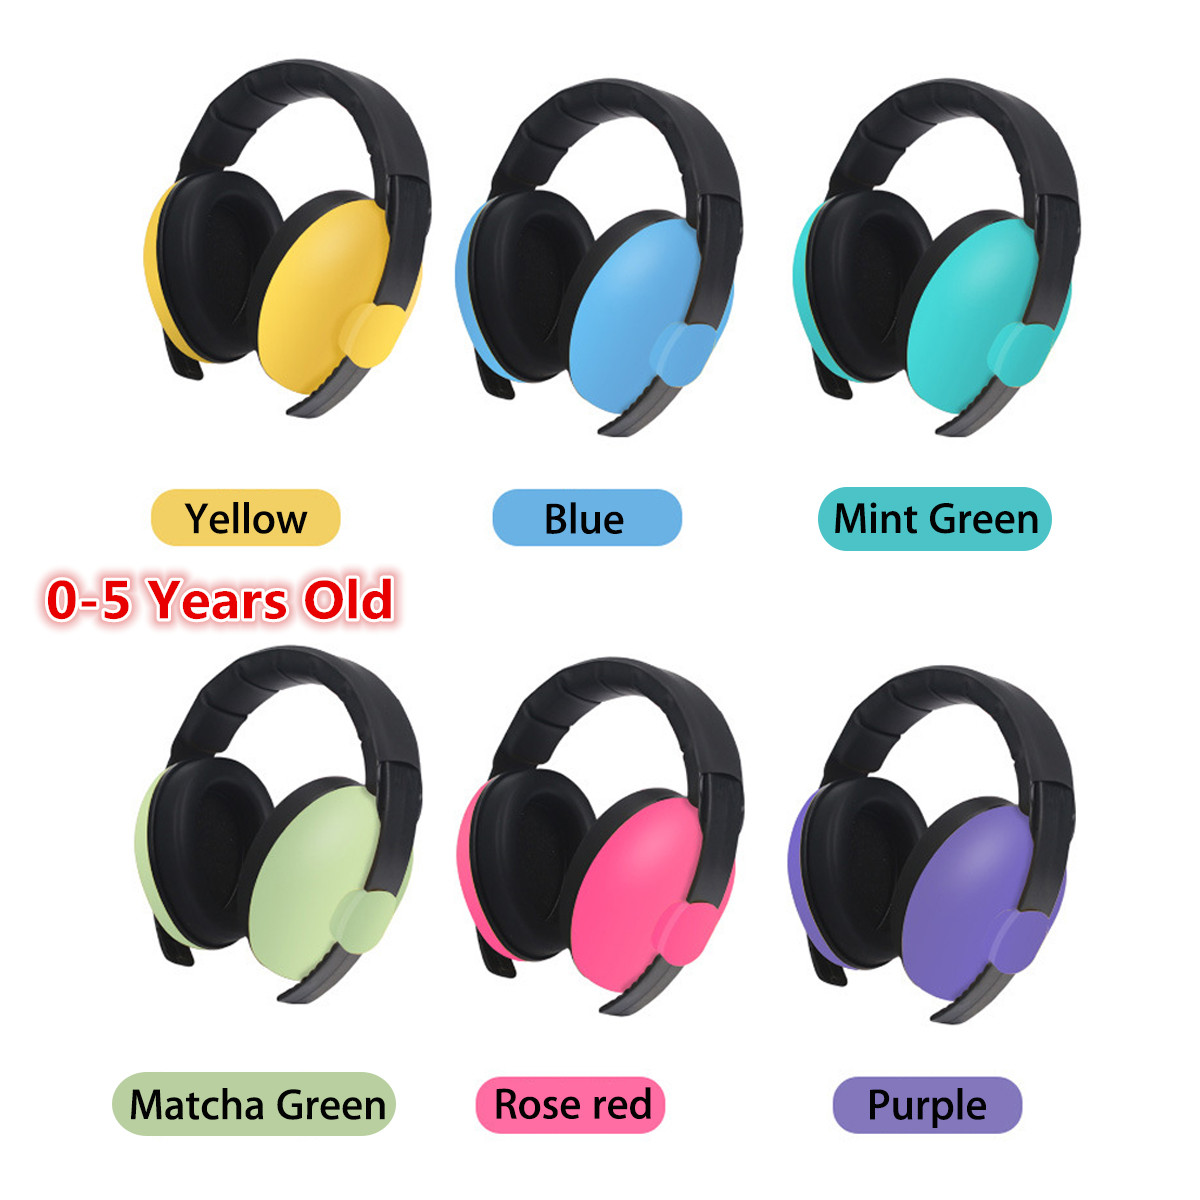 NEW 1 pcs Adjustable Baby Earmuffs Hearing Protection Ear Defenders Noise Reduction Safety for 3 Months-5 Years Old Child BabyNEW 1 pcs Adjustable Baby Earmuffs Hearing Protection Ear Defenders Noise Reduction Safety for 3 Months-5 Years Old Child Baby